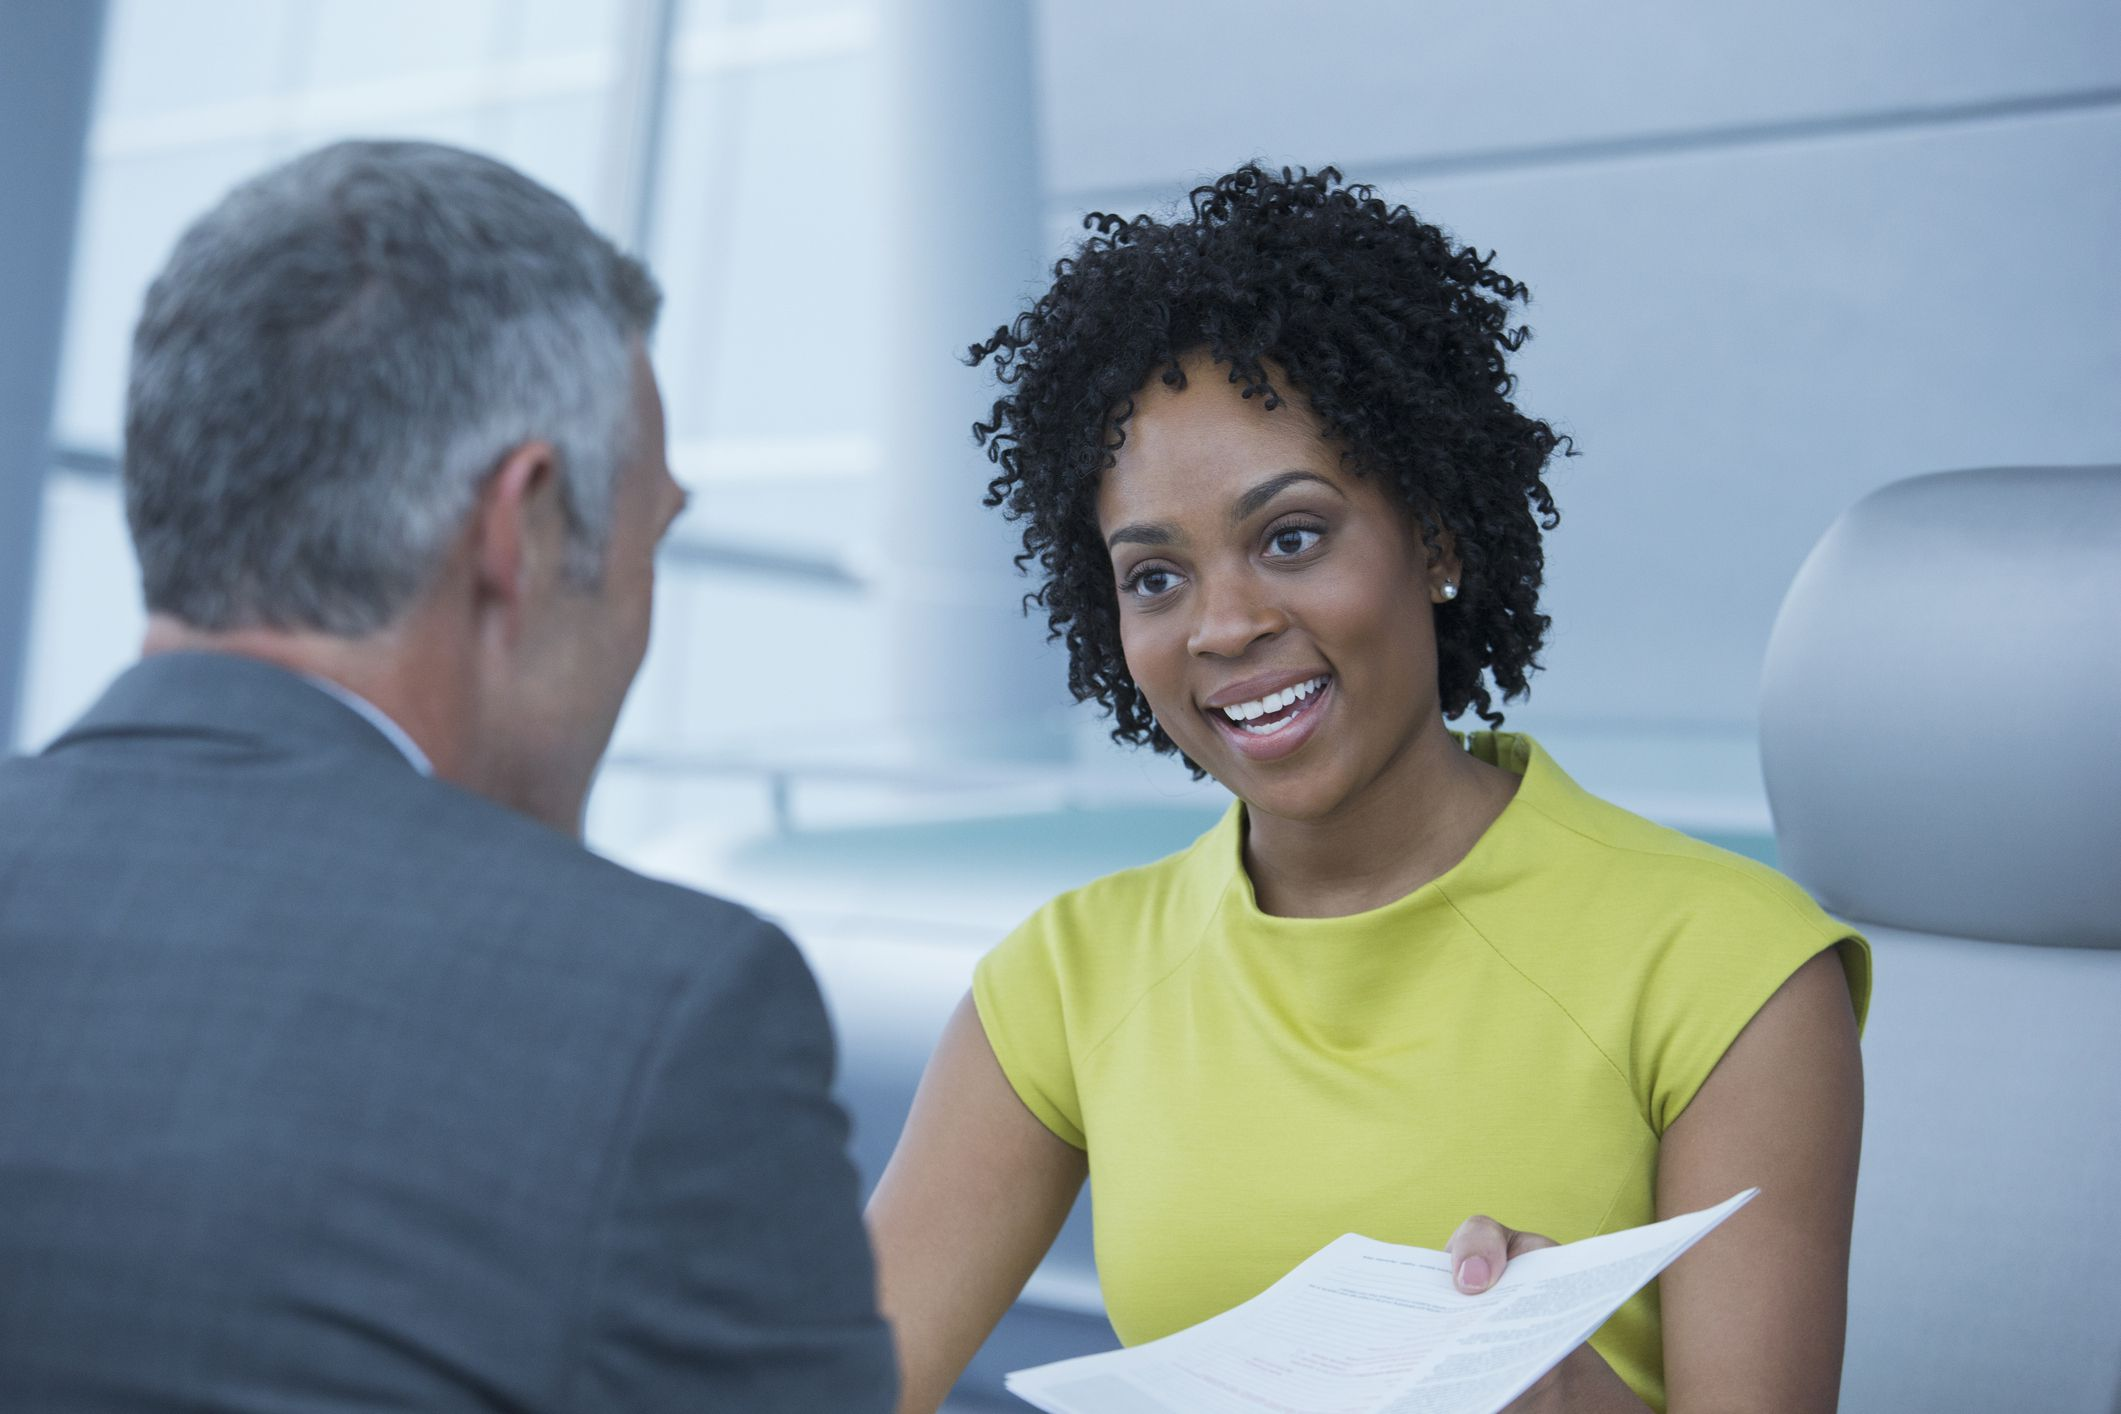 Interview: Tell Me Something About Yourself That's Not on Your Resume